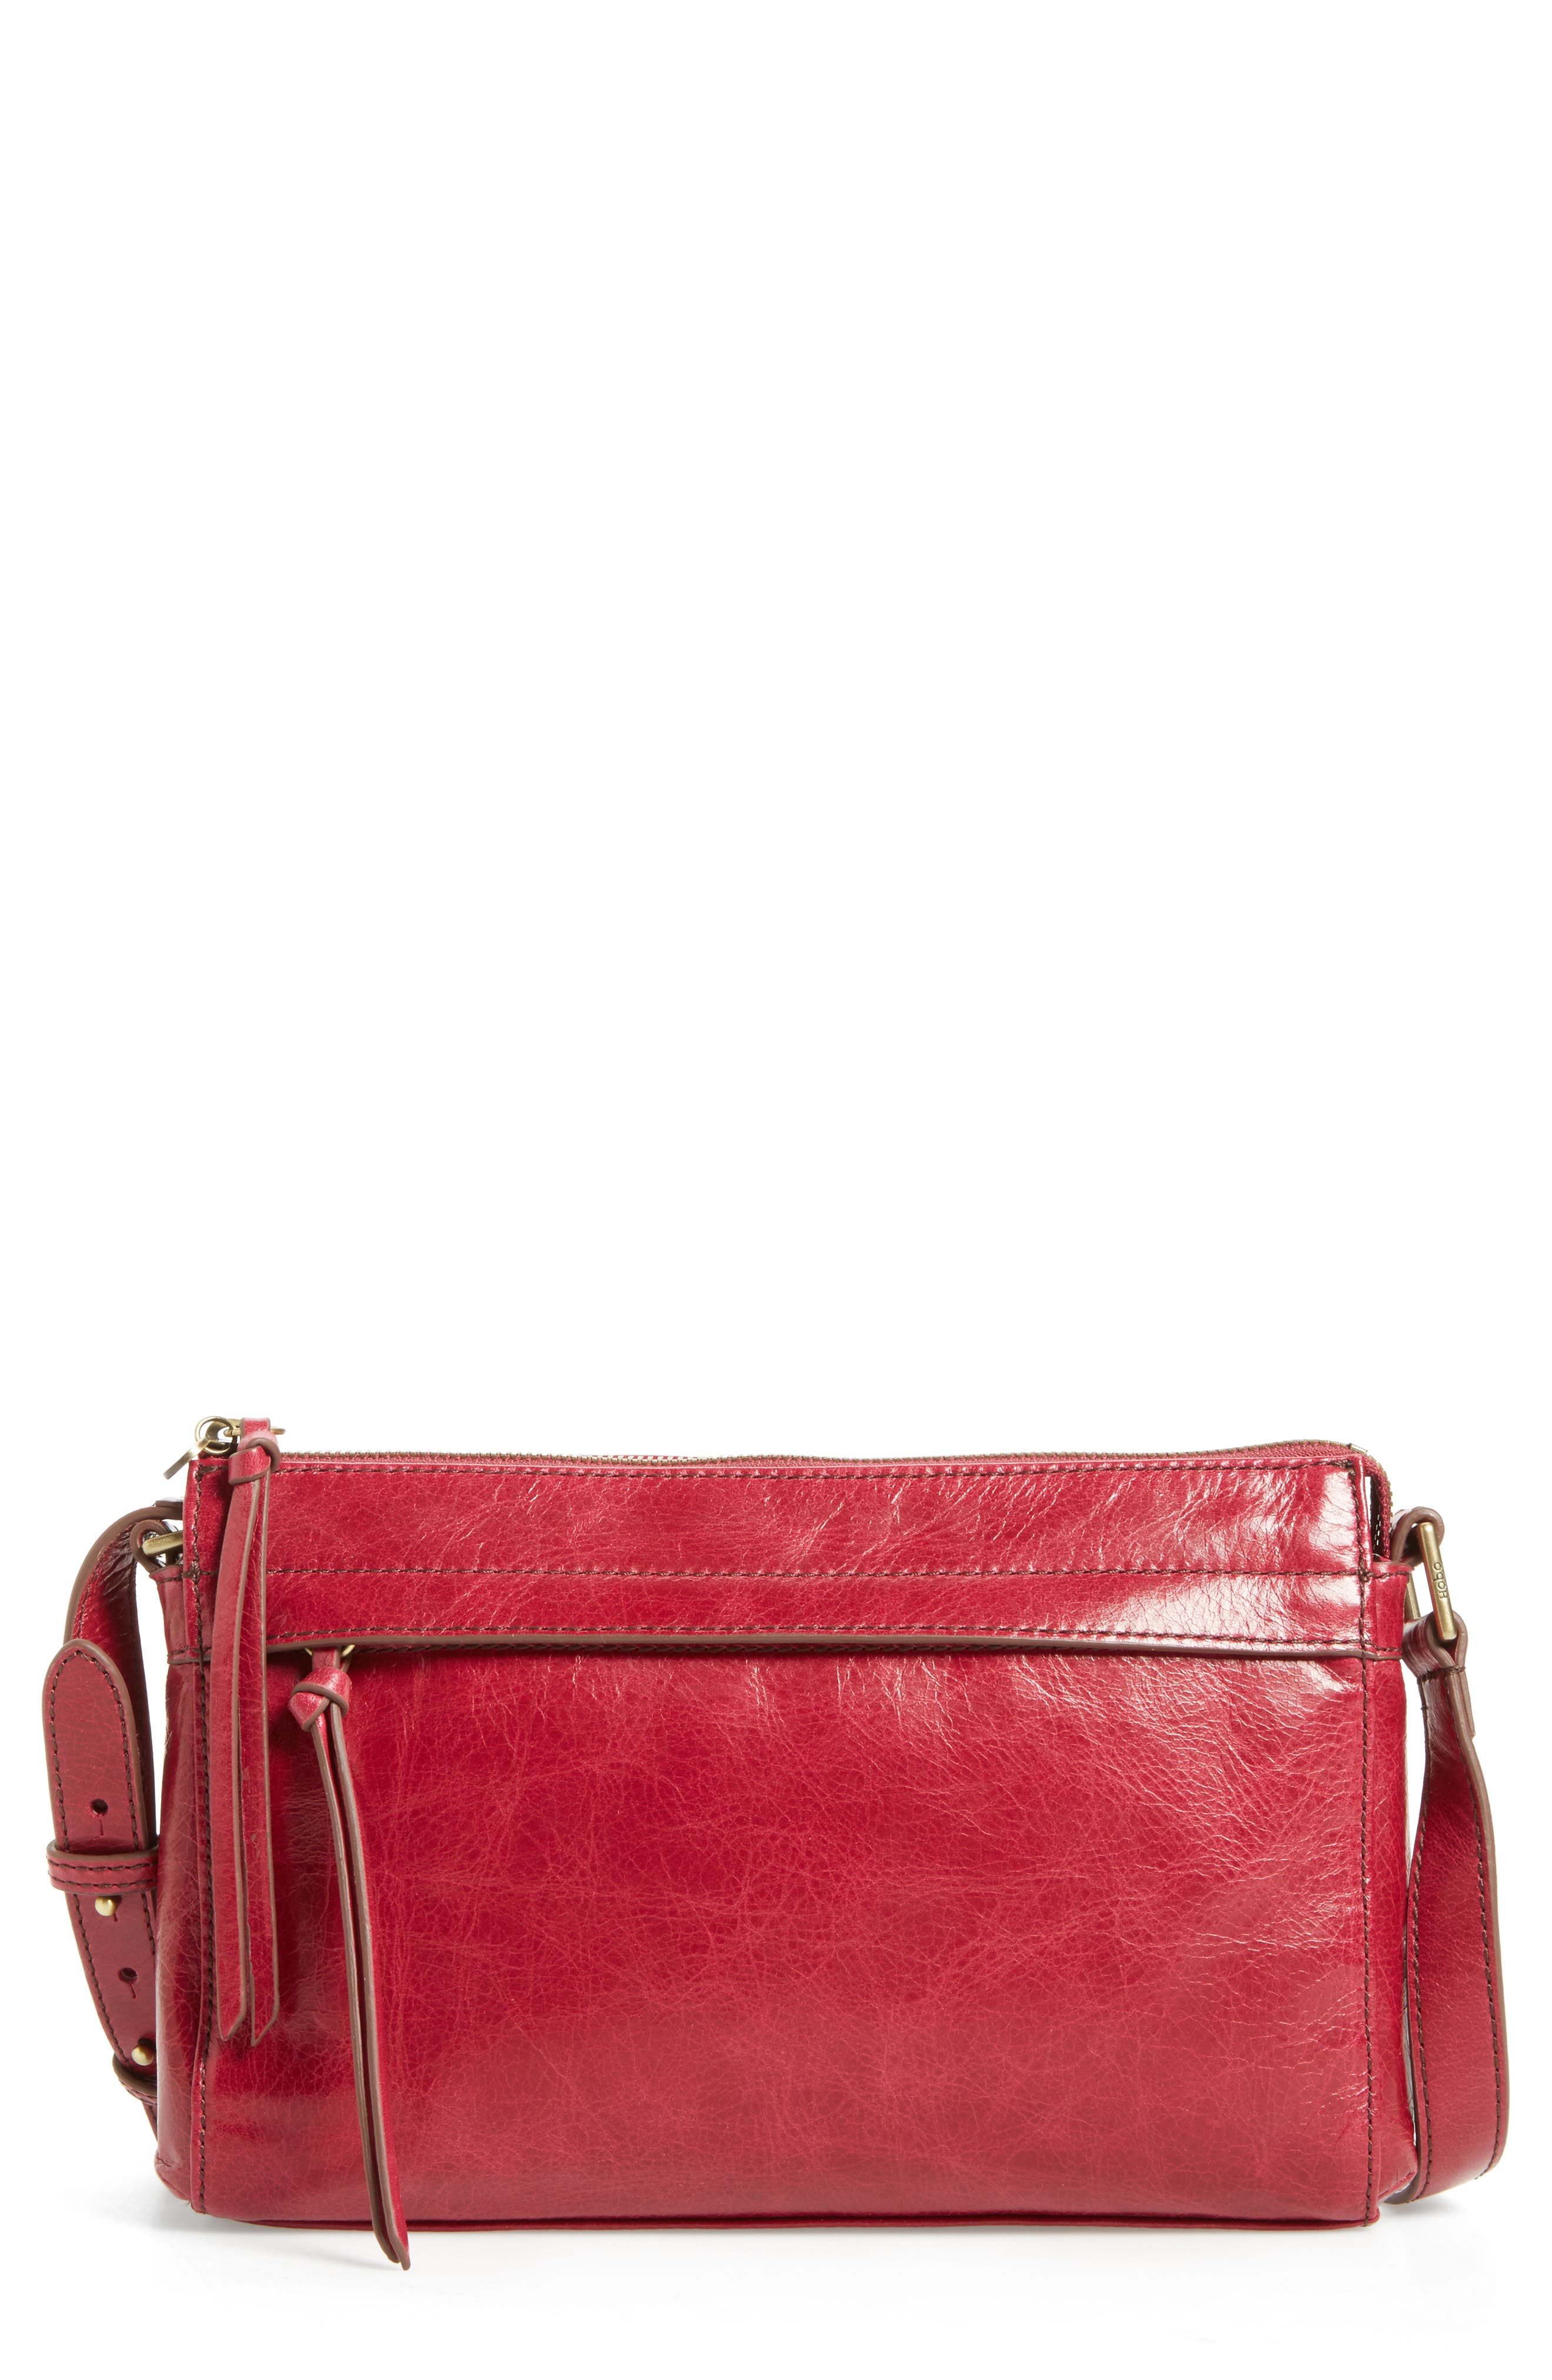 Tobey Leather Crossbody Bag,                             Alternate thumbnail 16, color,